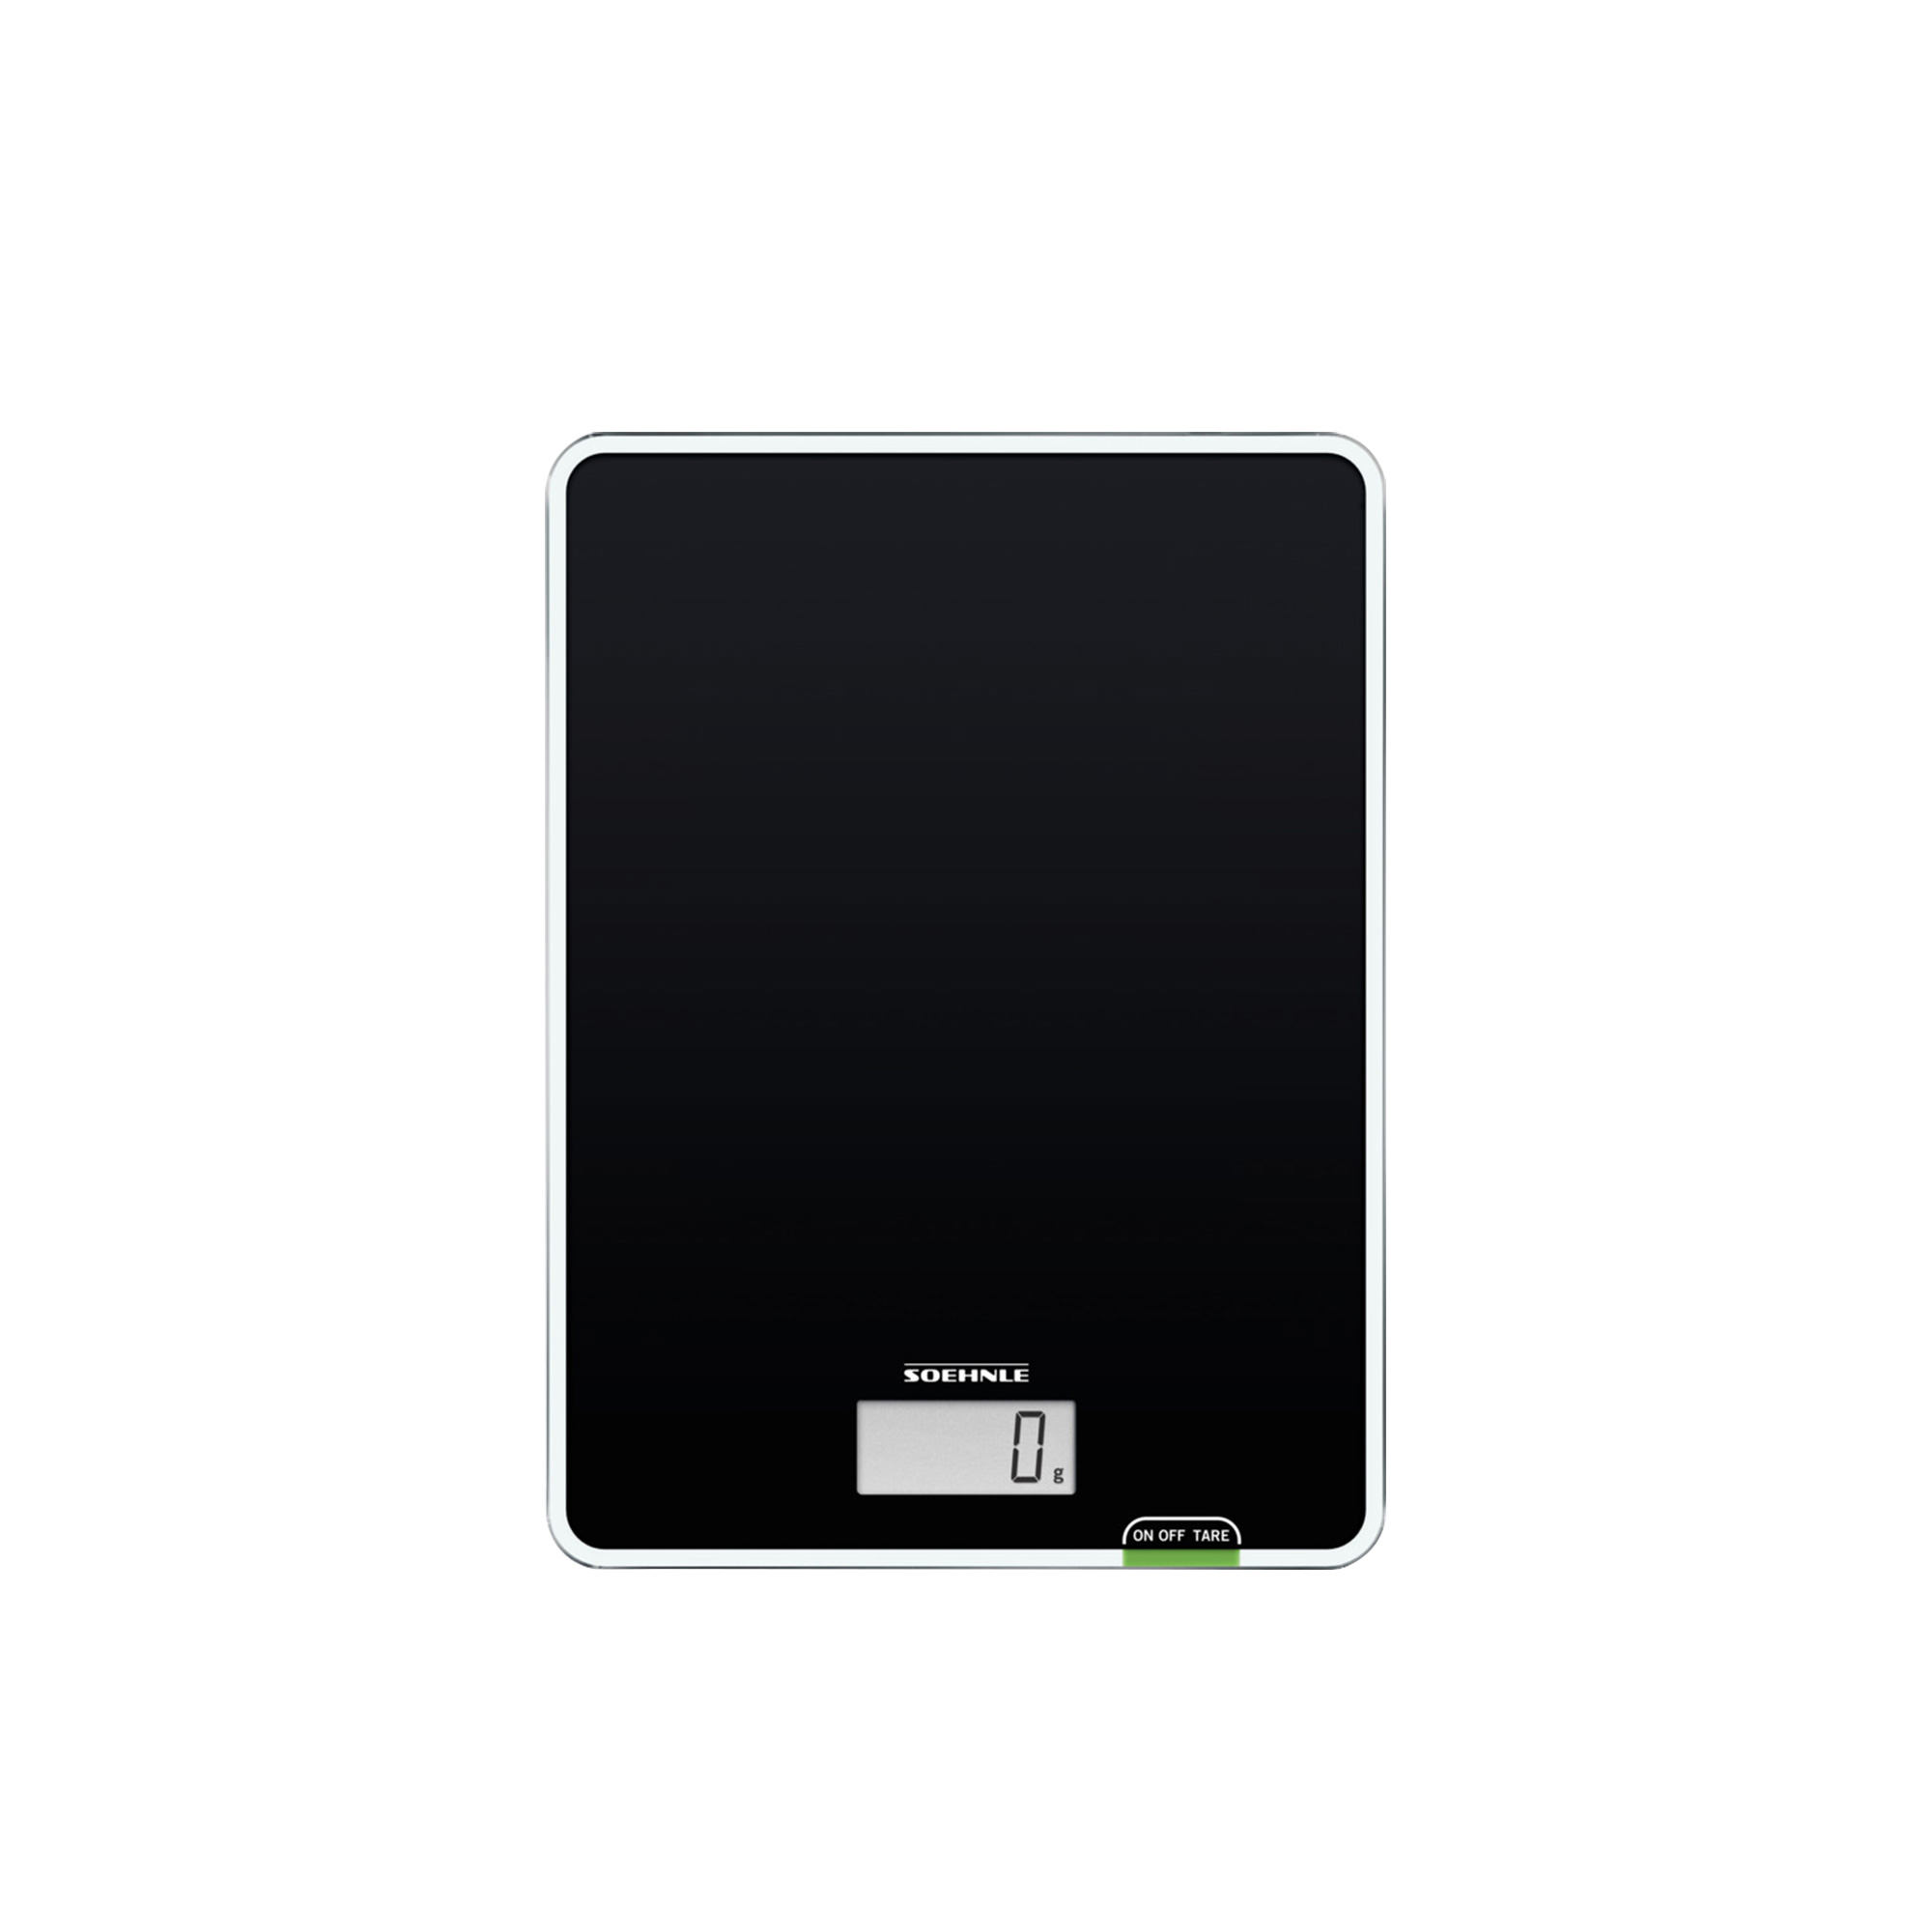 Soehnle Page Compact 100 Digital Kitchen Scale 5kg Black